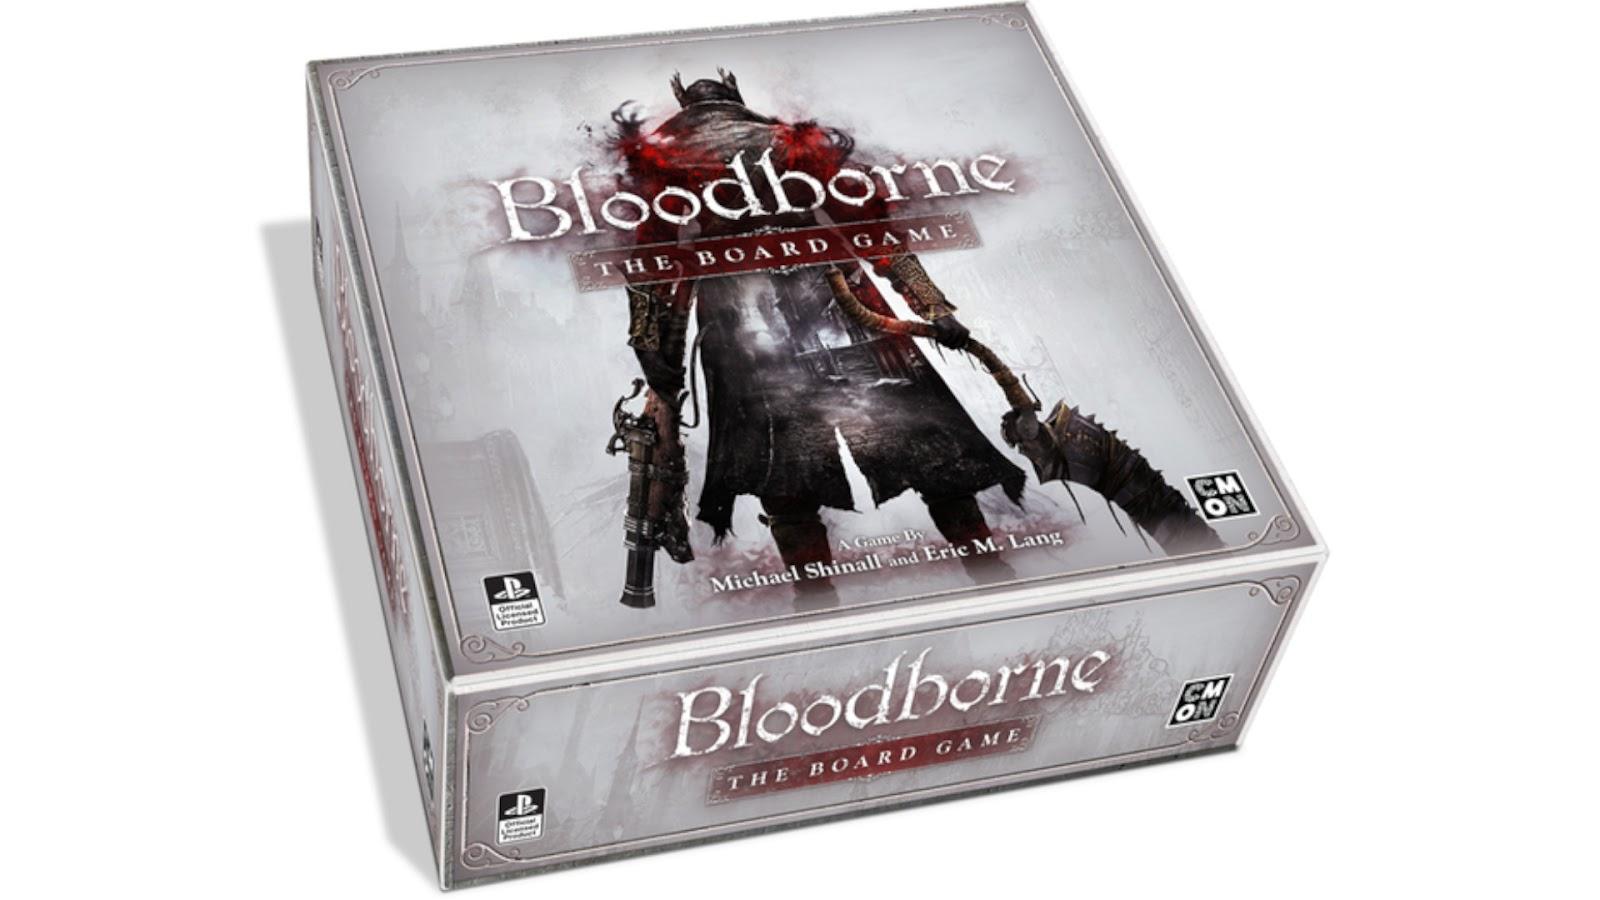 Kickstarter Highlights - Bloodborne The Board Game